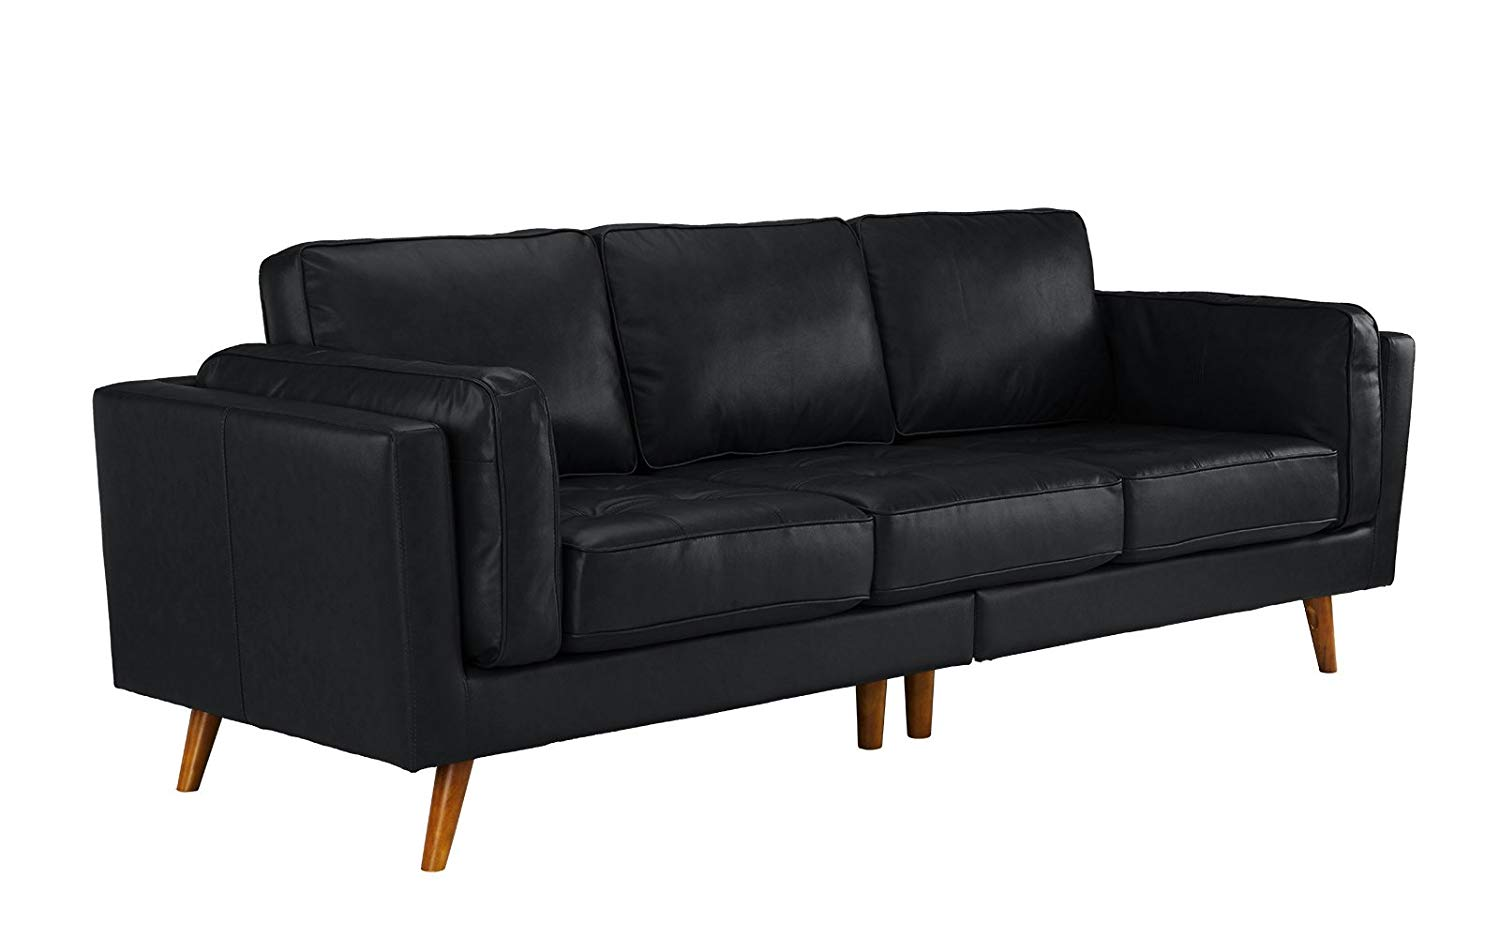 Cheap Black Leather Tufted Sofa, find Black Leather Tufted ...